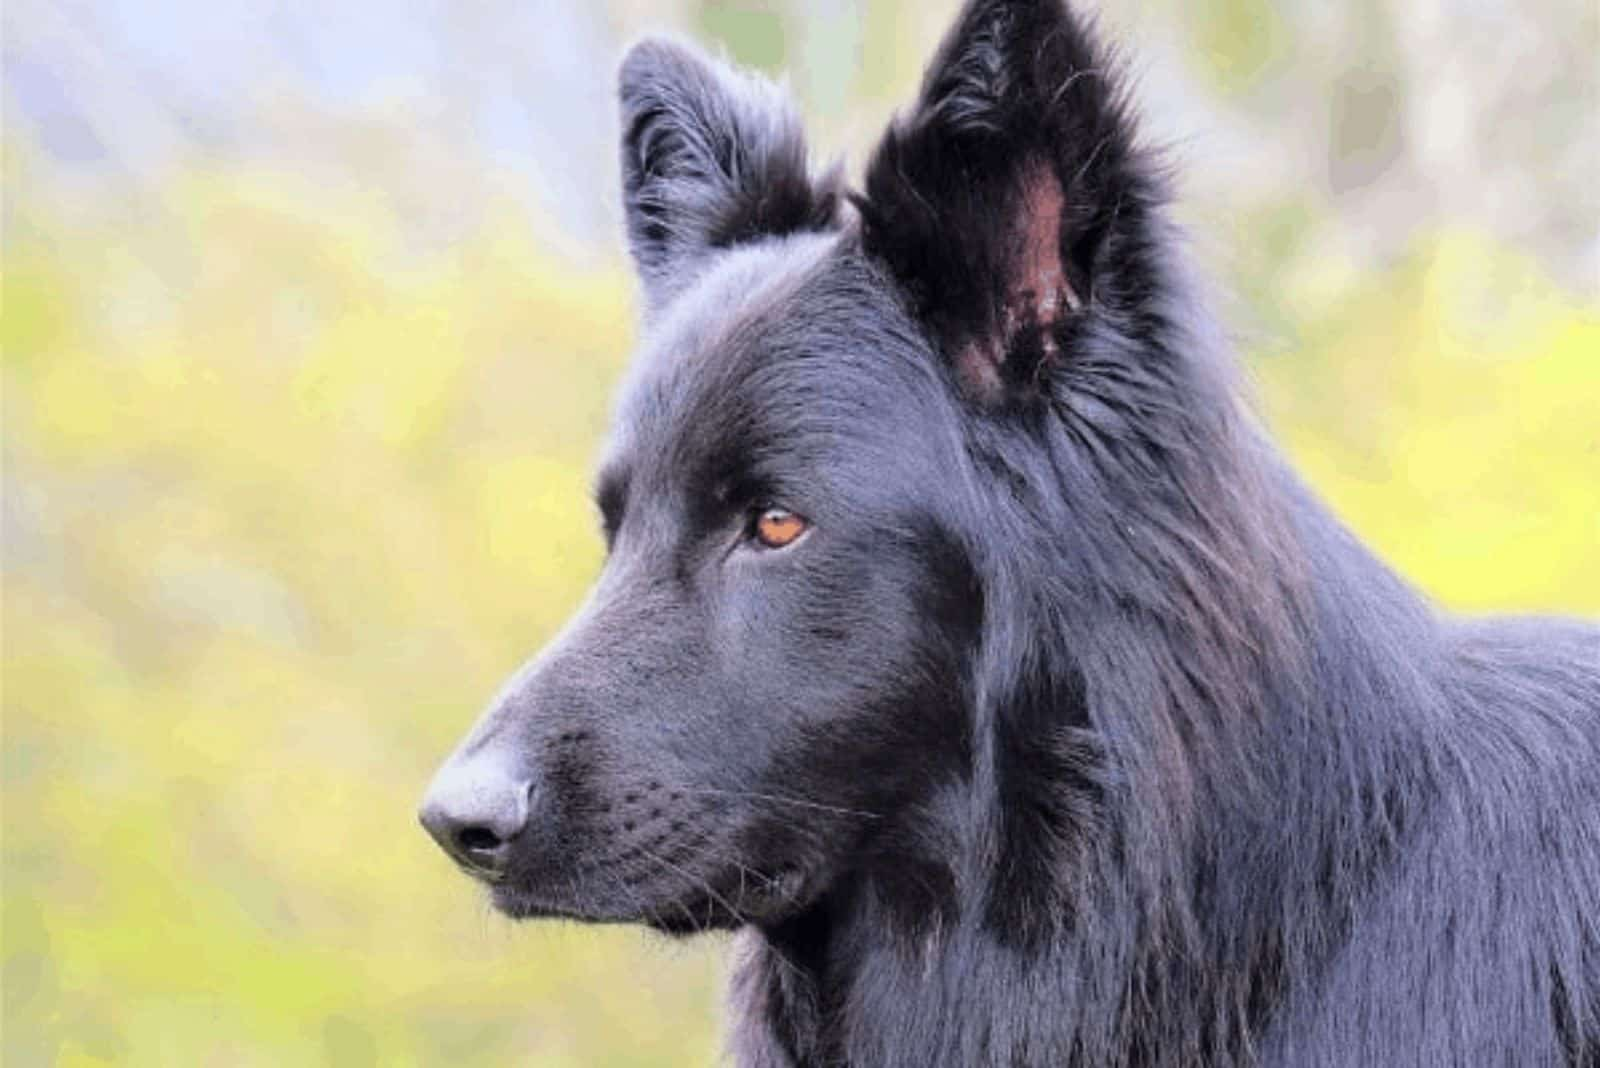 Lycan Shepherd stands and looks in front of him